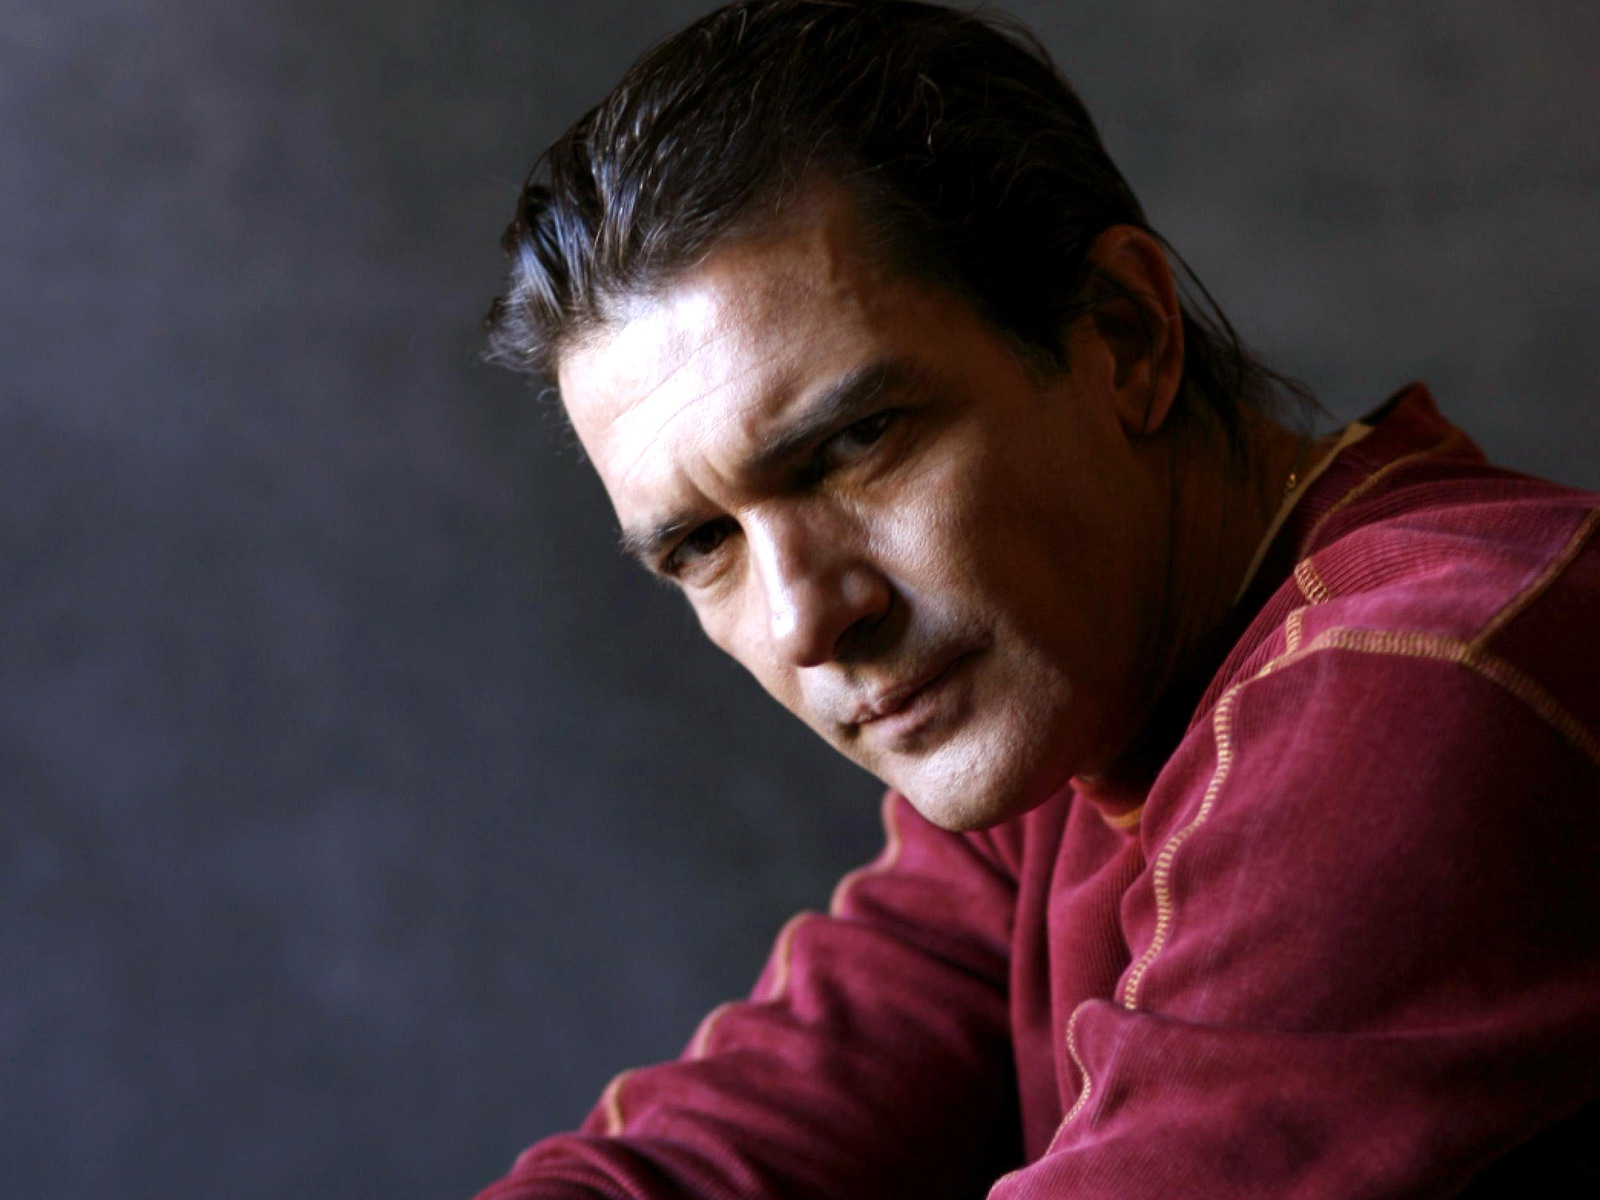 antonio banderas celebrity wallpaper 52104